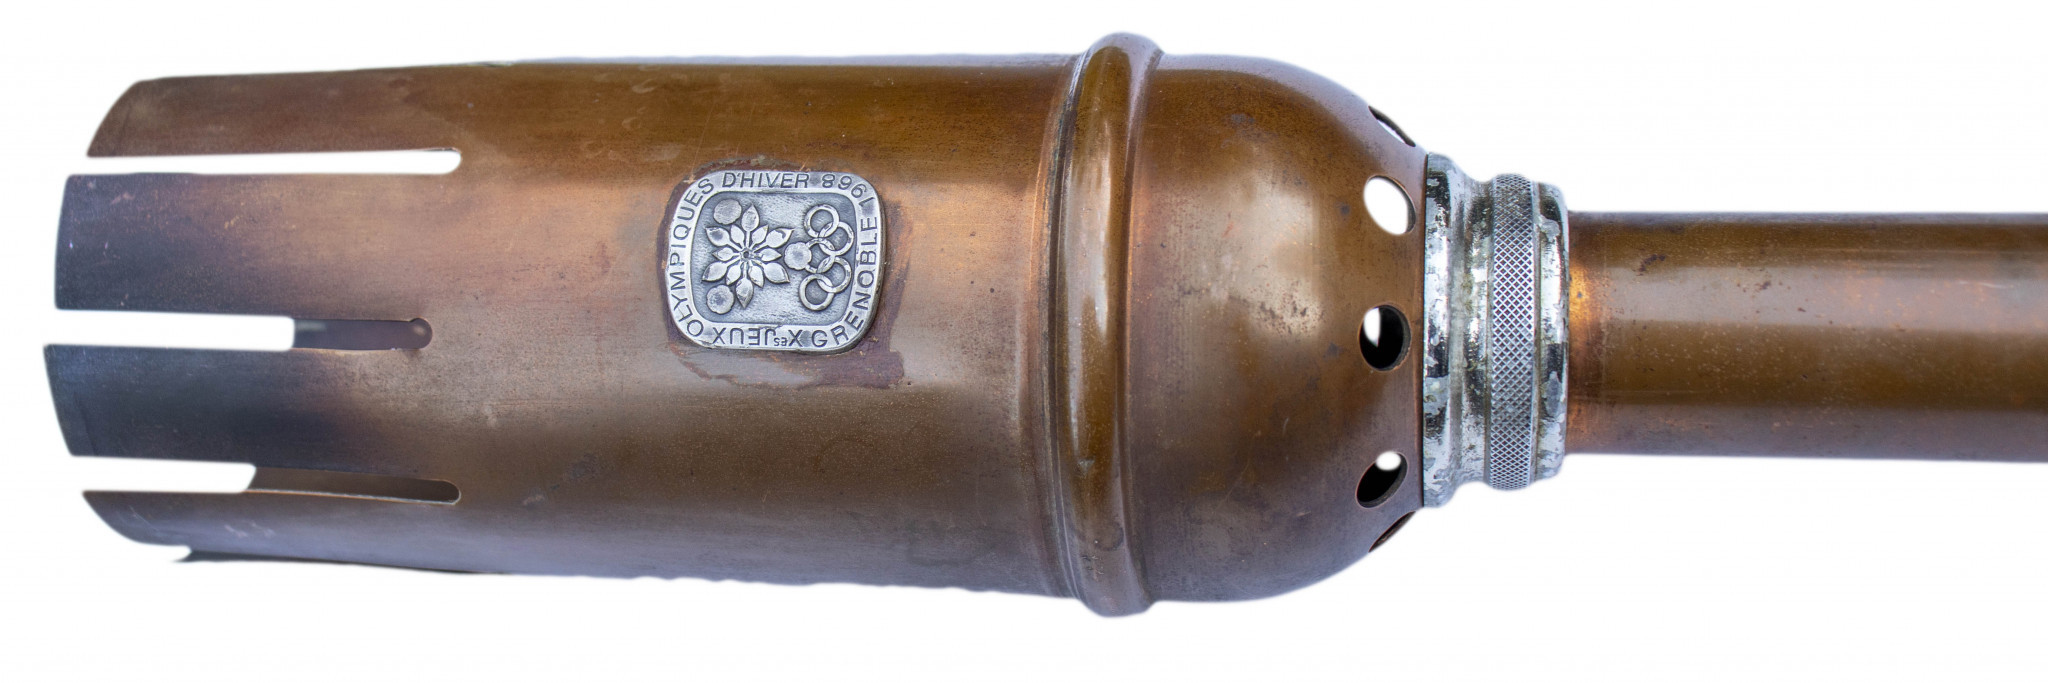 A Grenoble 1968 Olympic Torch sold in January raised more than $200,000 at auction ©Nate D. Sanders Auctions